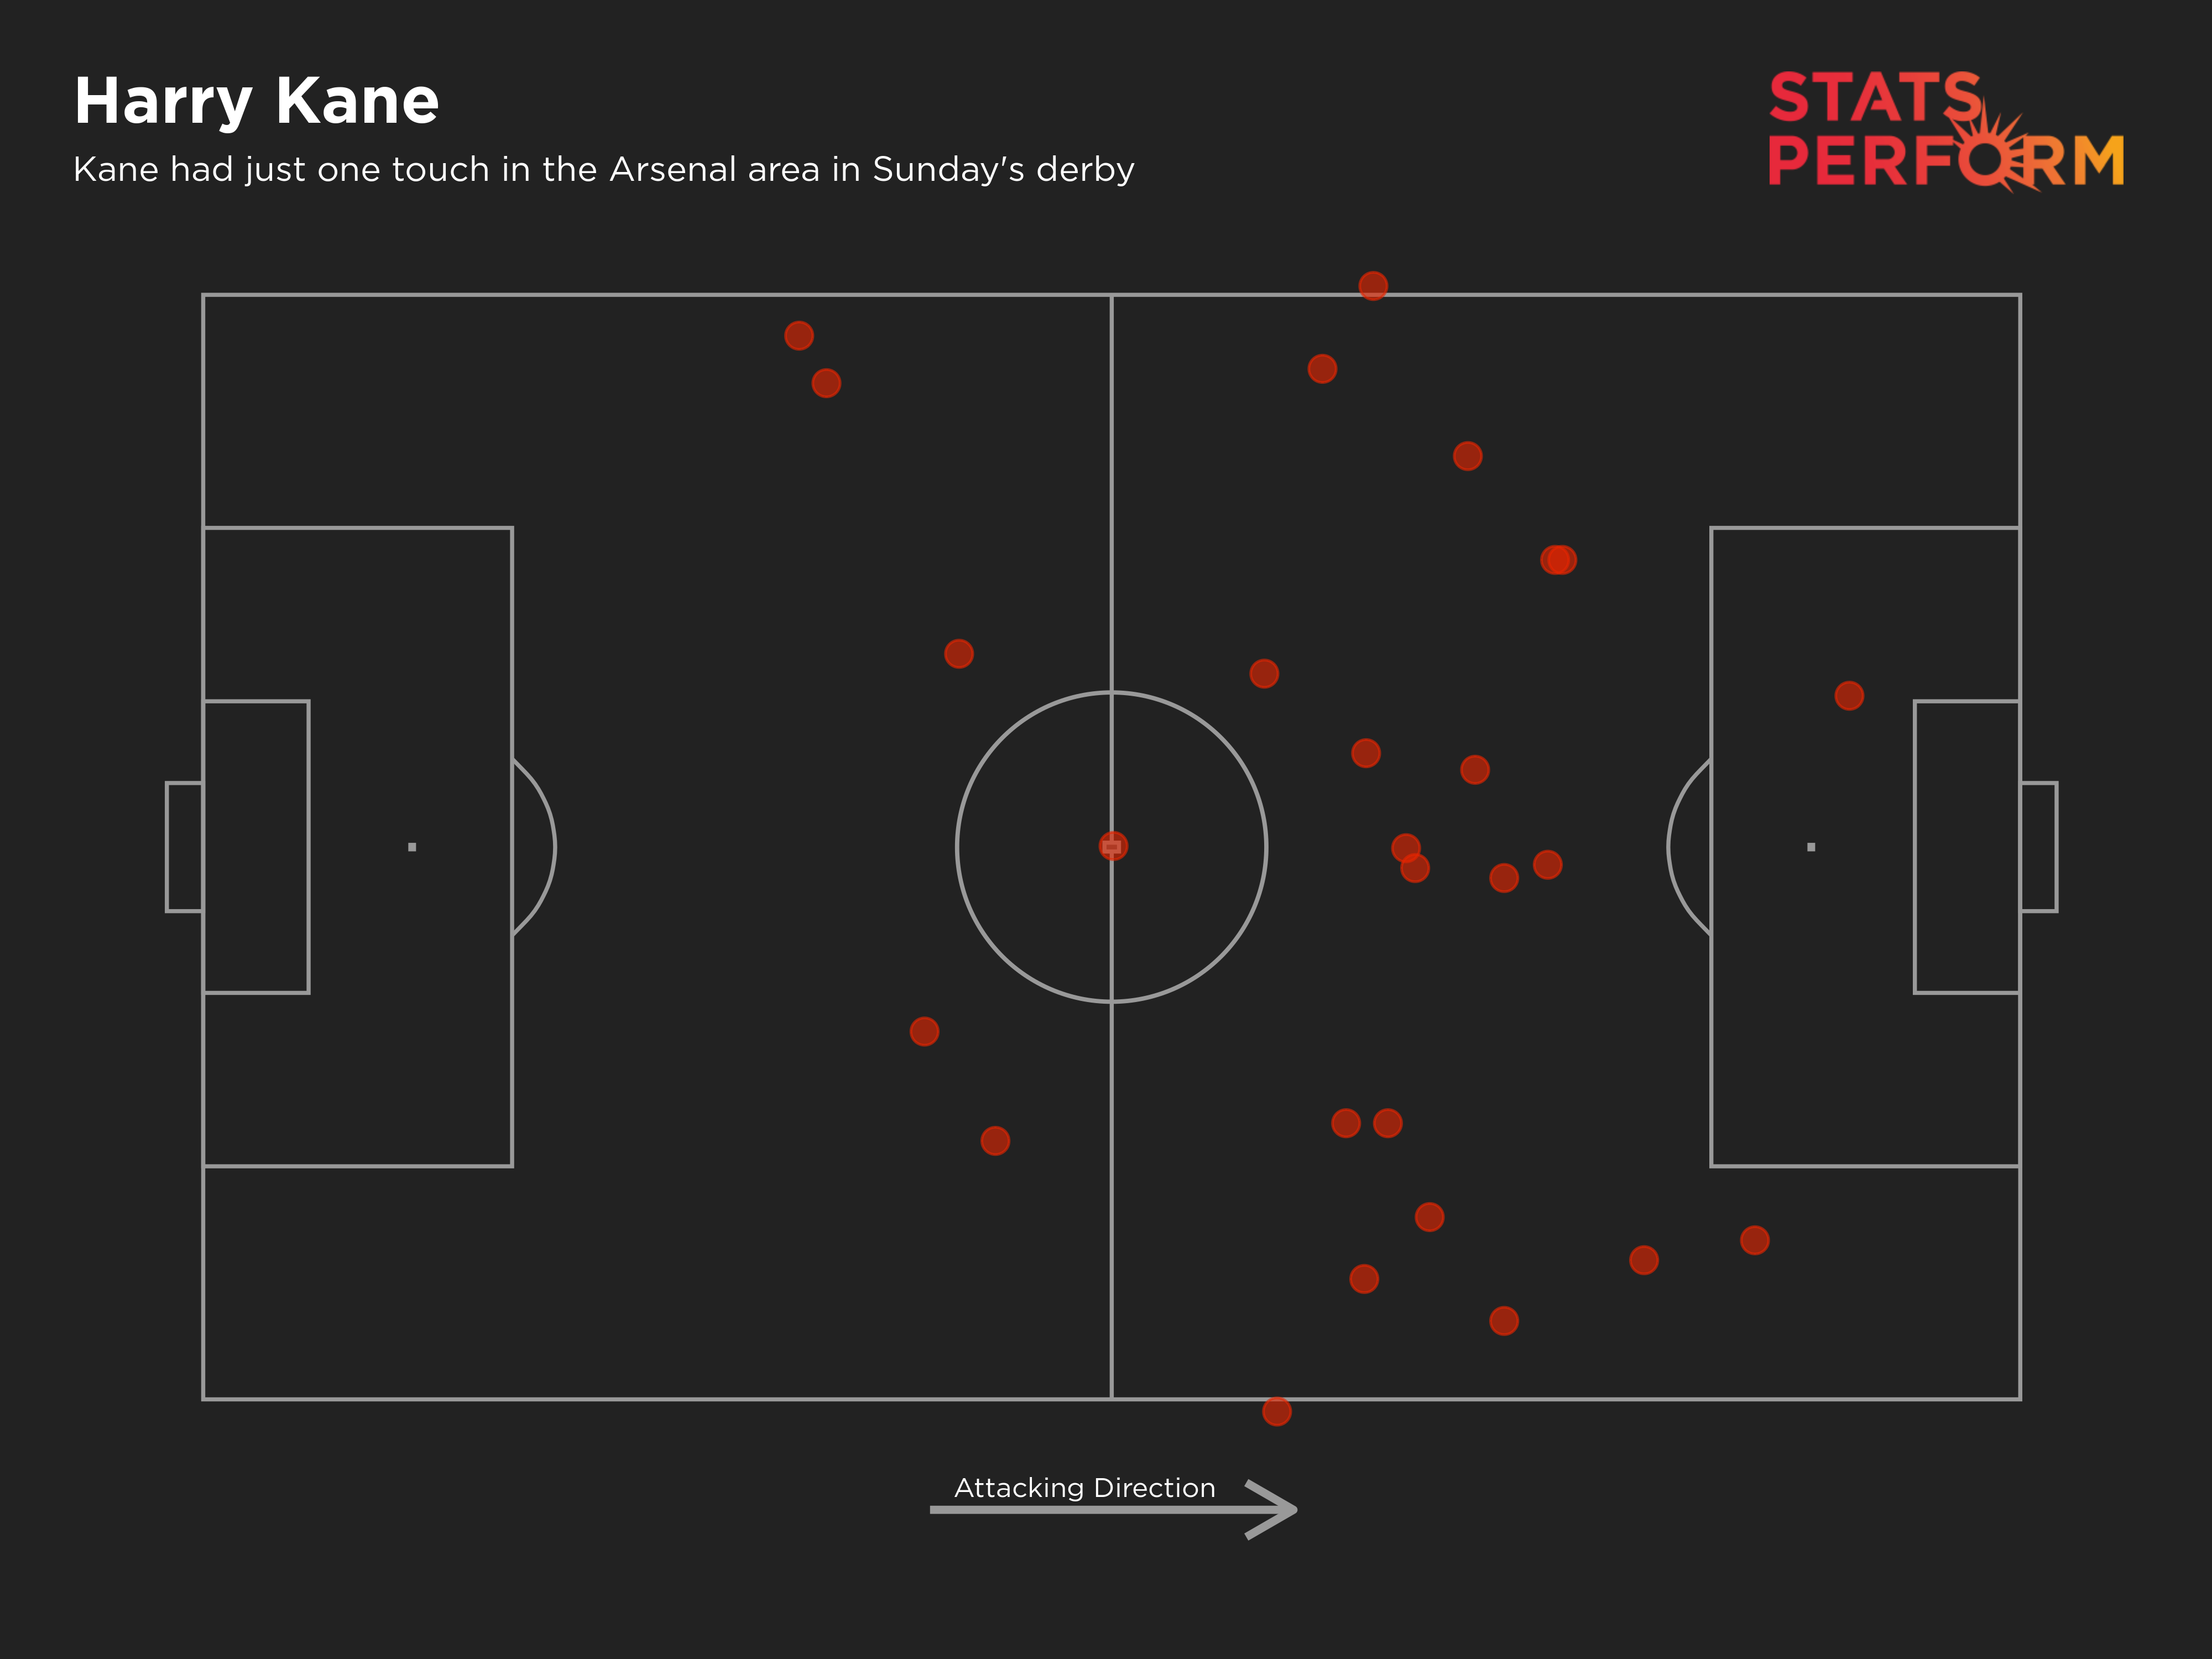 Kane had just one touch in the Arsenal area in Sunday's derby